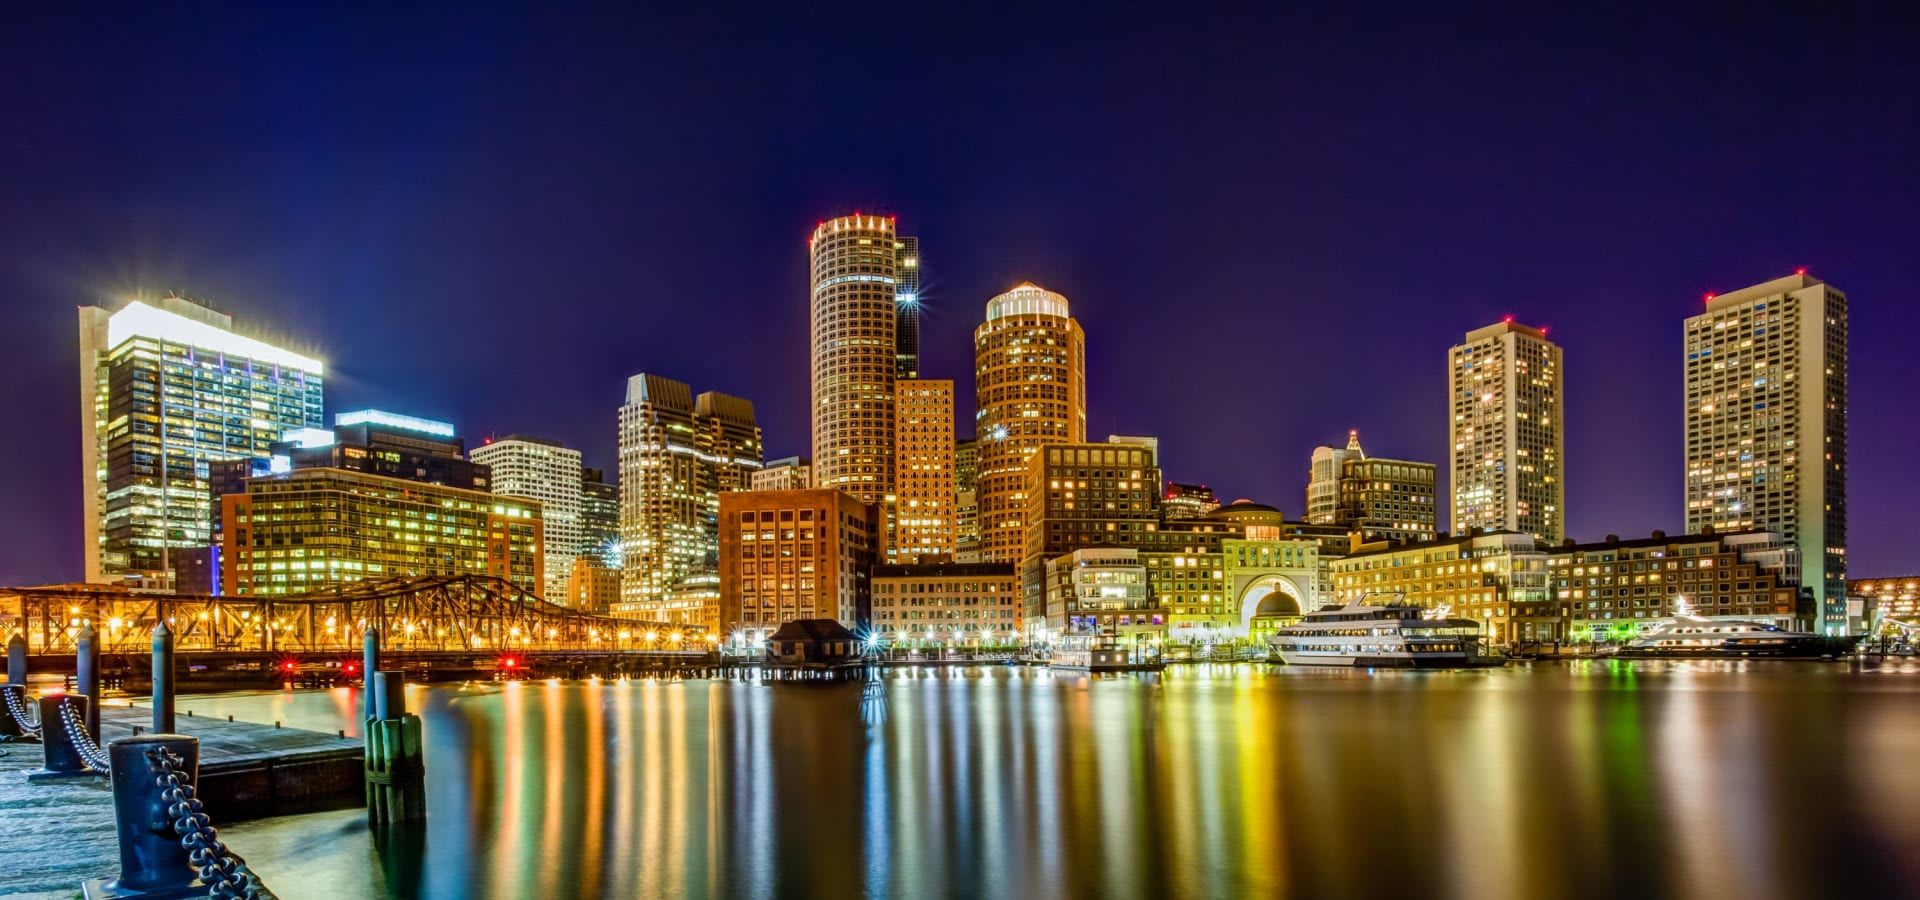 The 10 Hottest Real Estate Markets in the Country